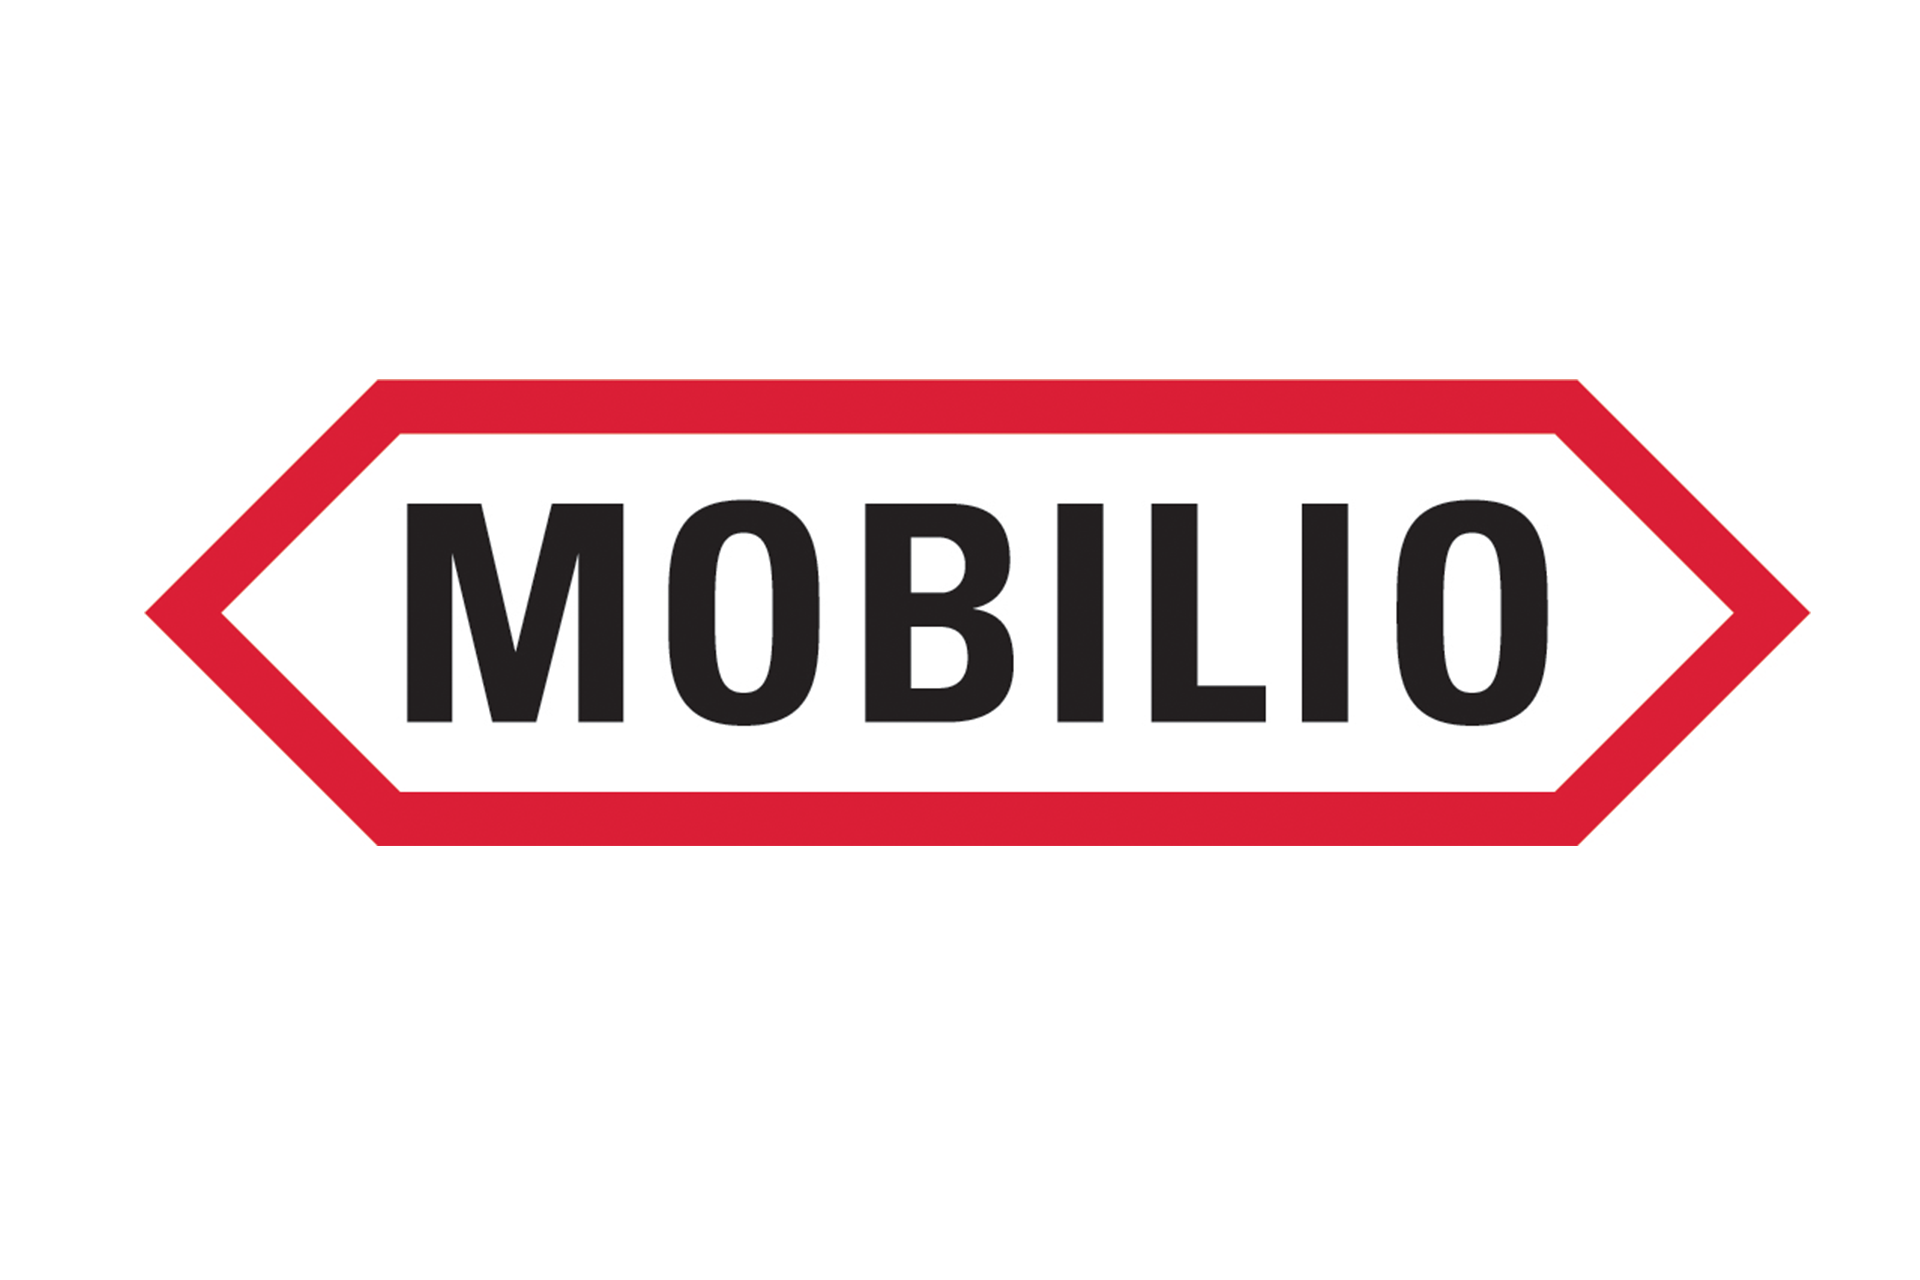 mobilio.png